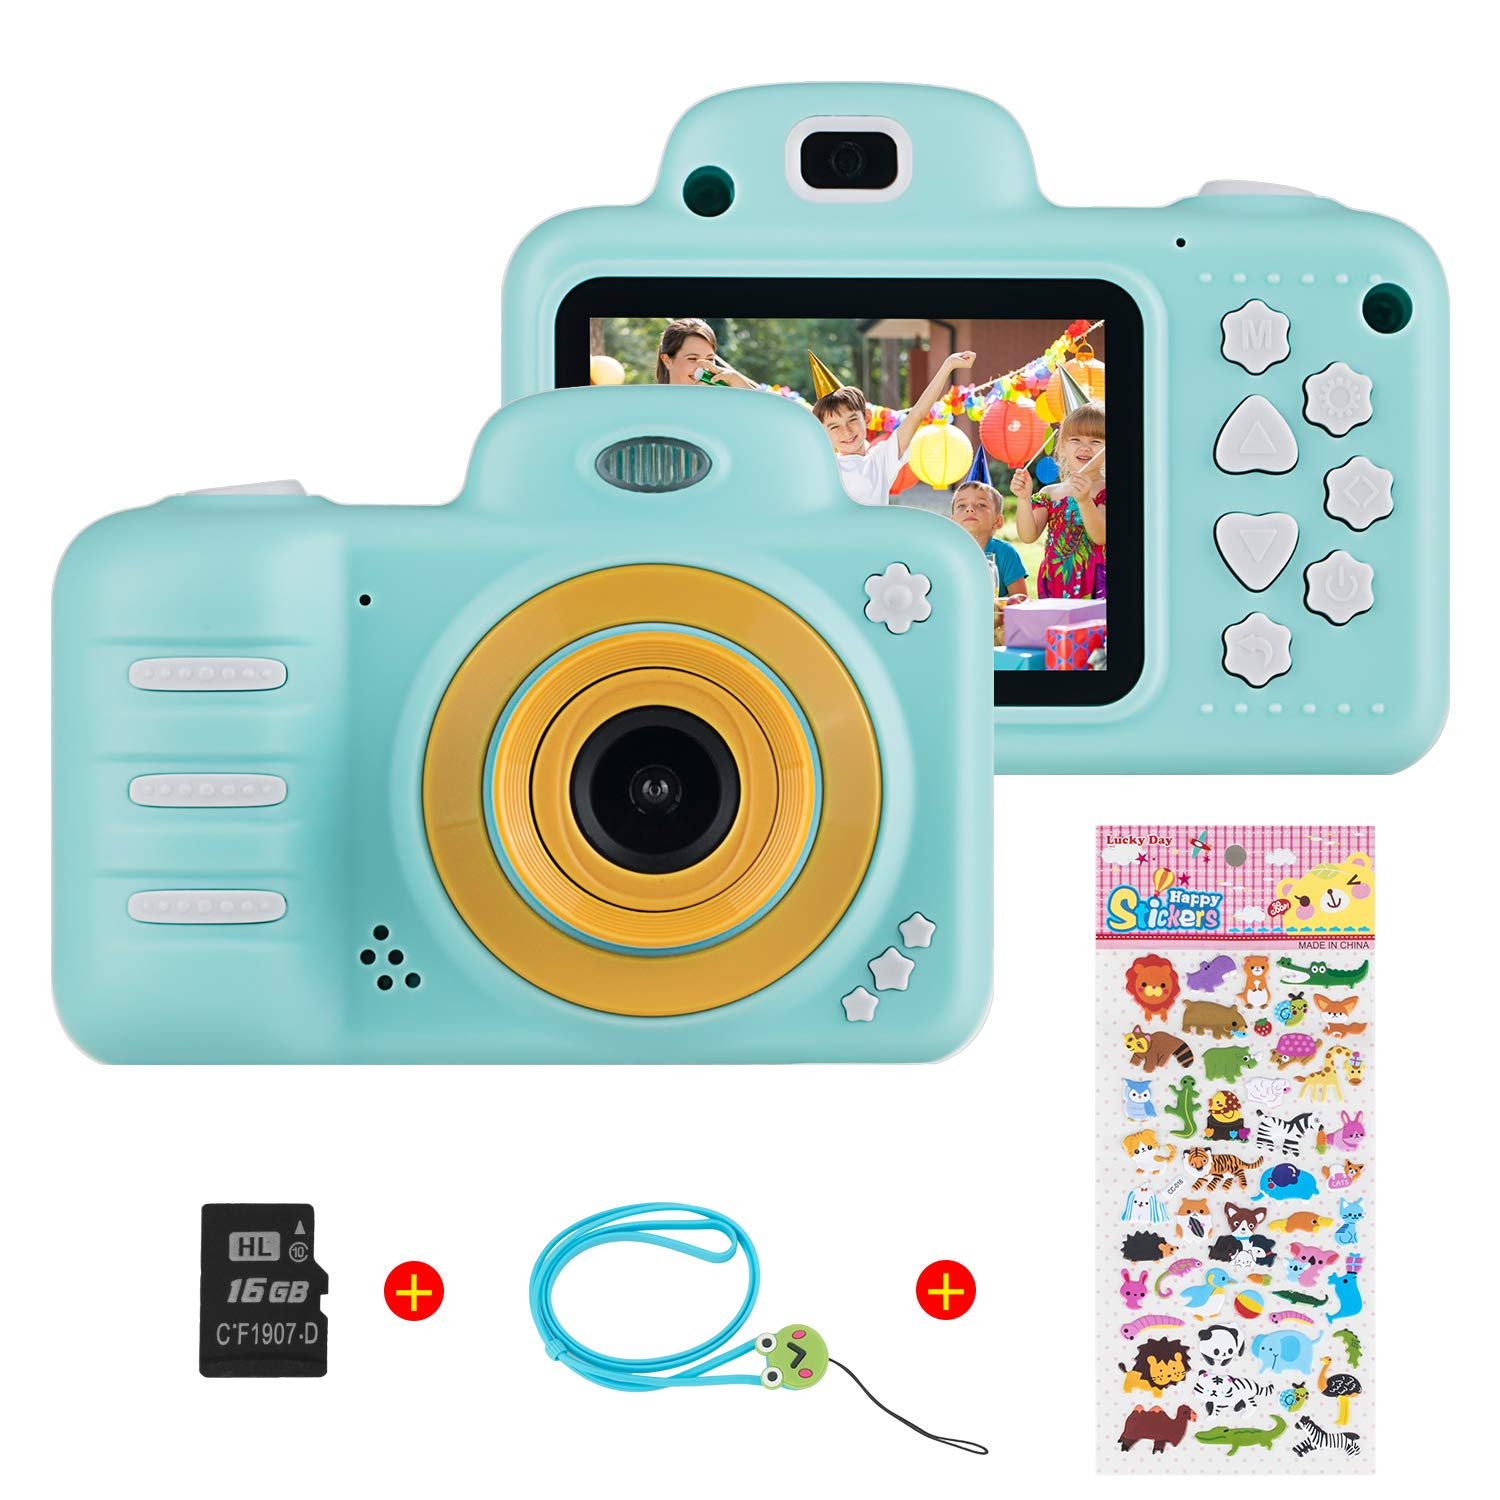 Themoemoe Kids Camera, Camera for Kids Video Cameras Kids Digital Camera 8MP 1080P HD Toys for 3-10 Year Old Girl with 16GB TF Card (Blue) by Themoemoe